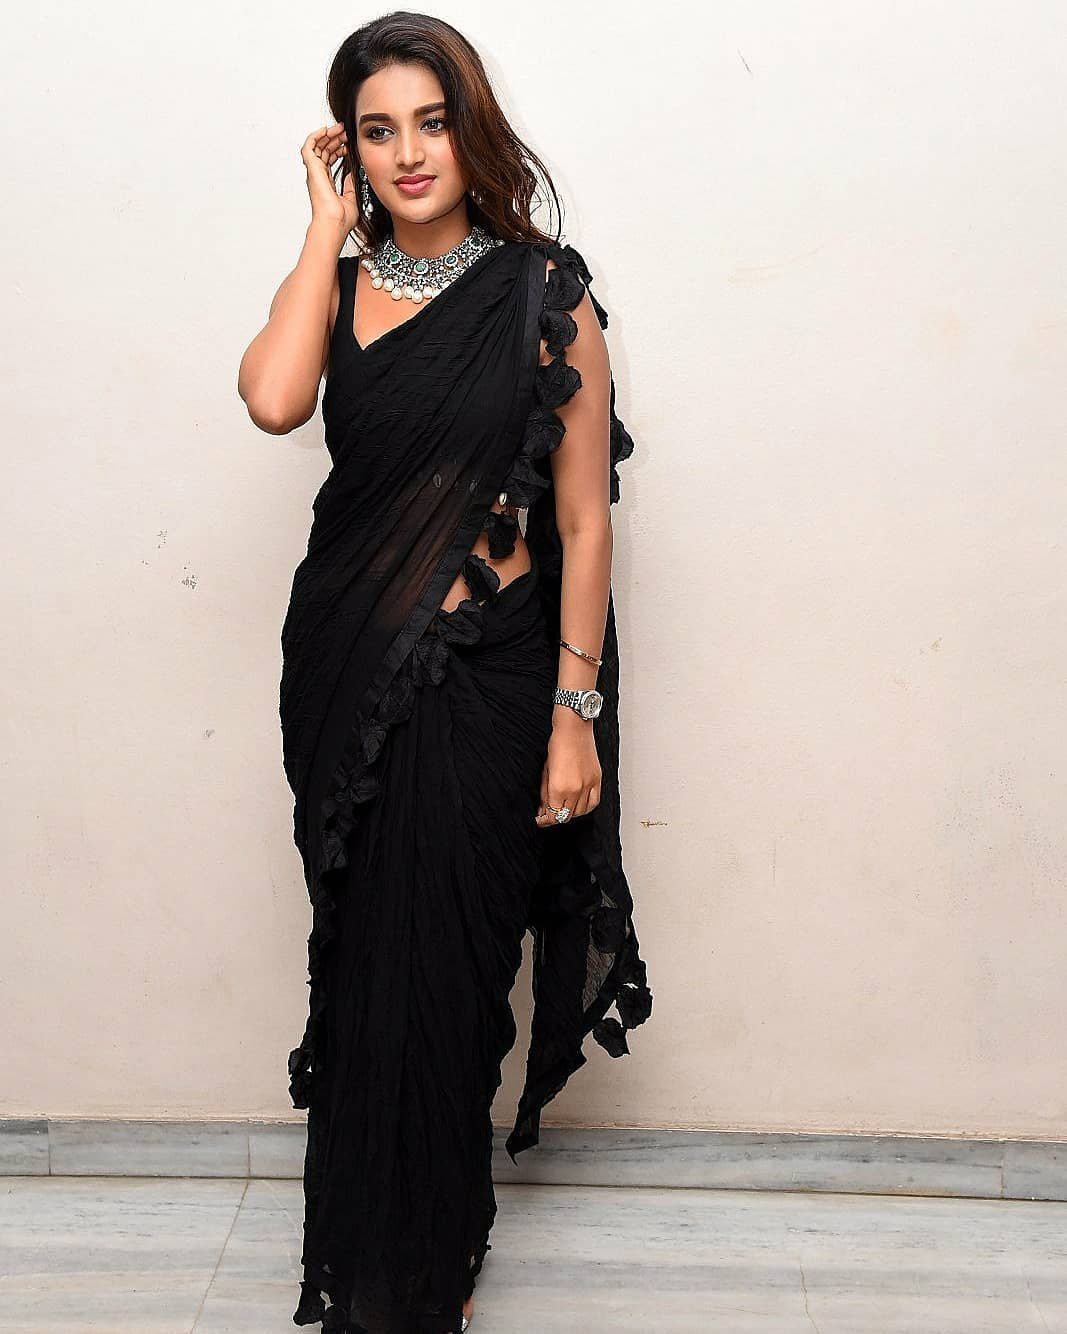 Niddhi Agerwal Showing Her Sexy Waist InTransparent Black Saree